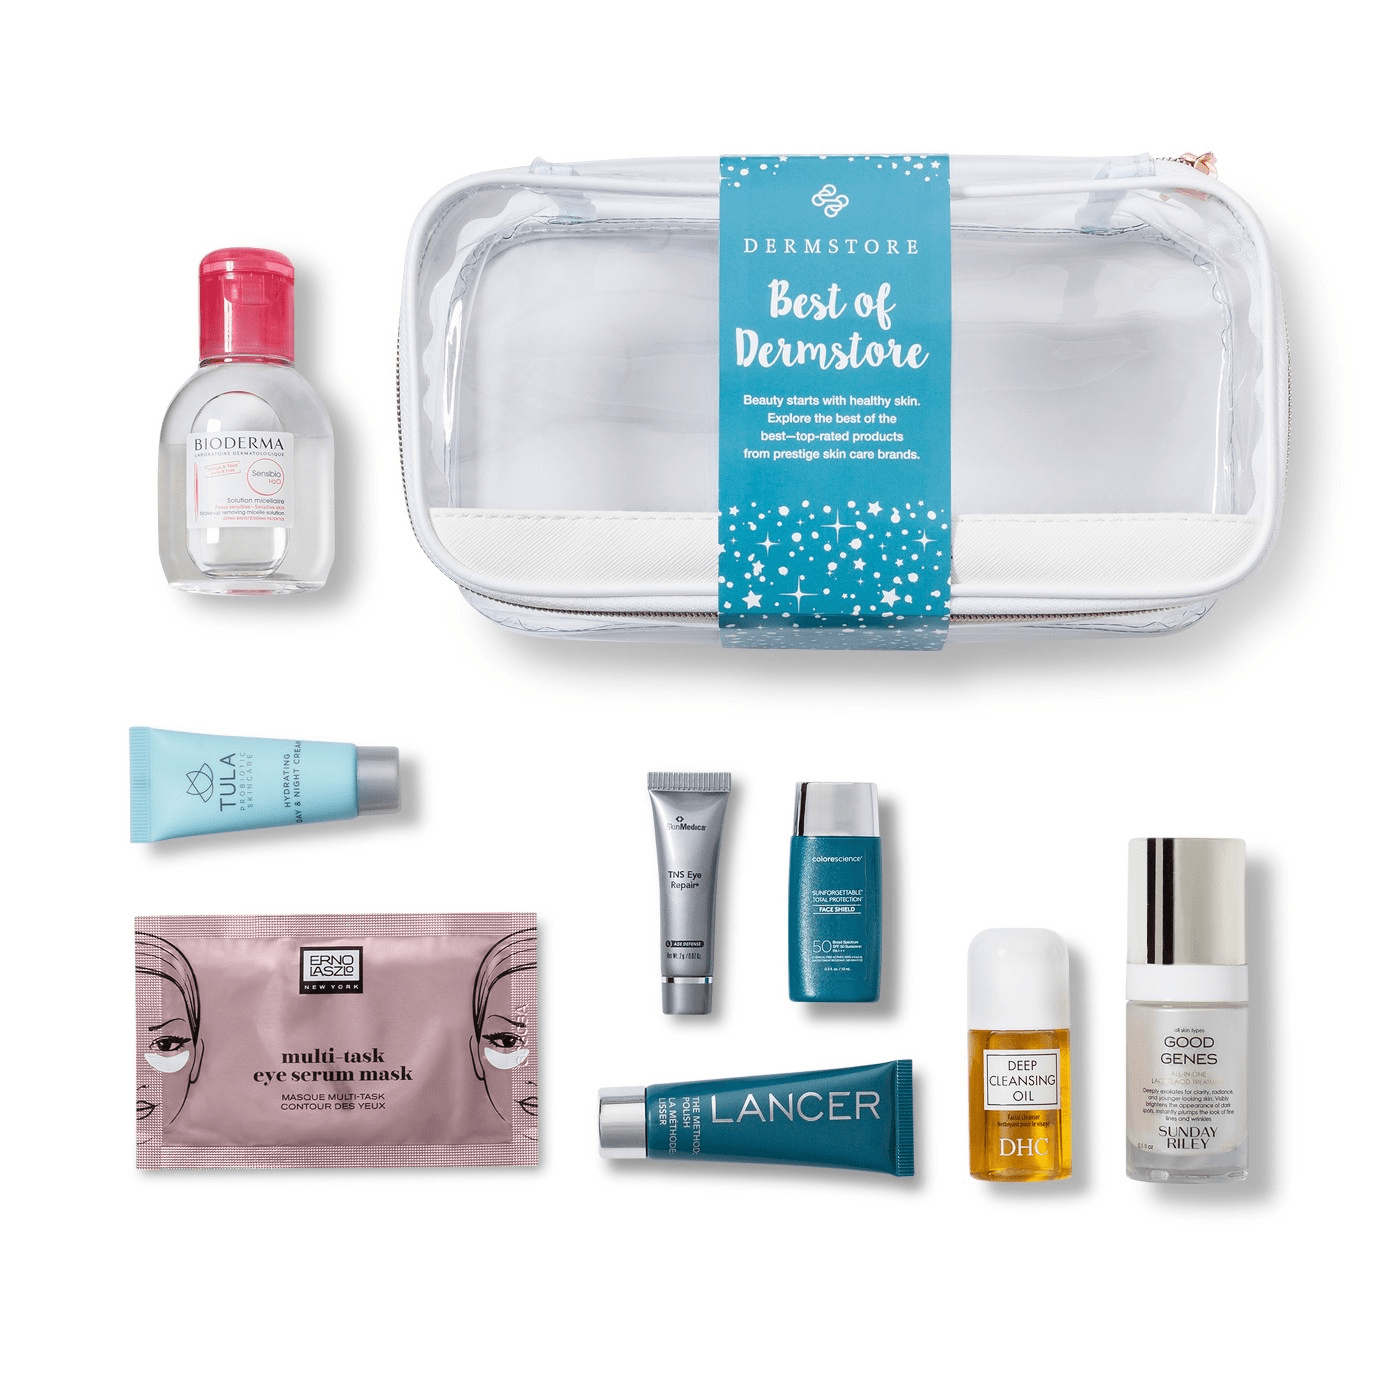 Target Beauty Box Holiday Dermstore Skin Care Box Available Now!